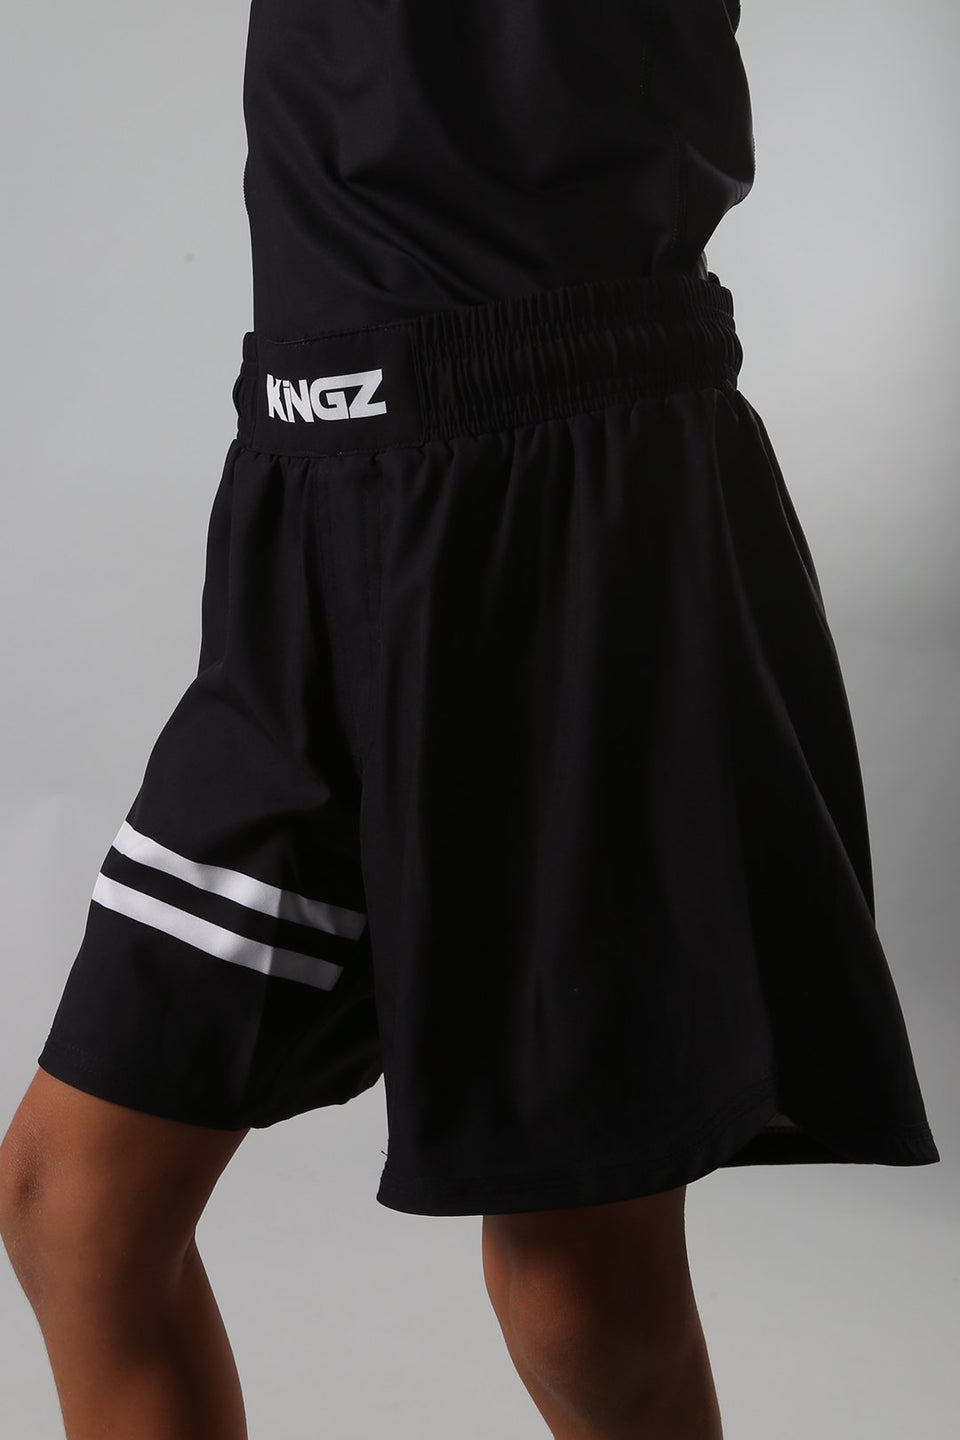 Kingz Captain Youth Fight Shorts - Fighters Market